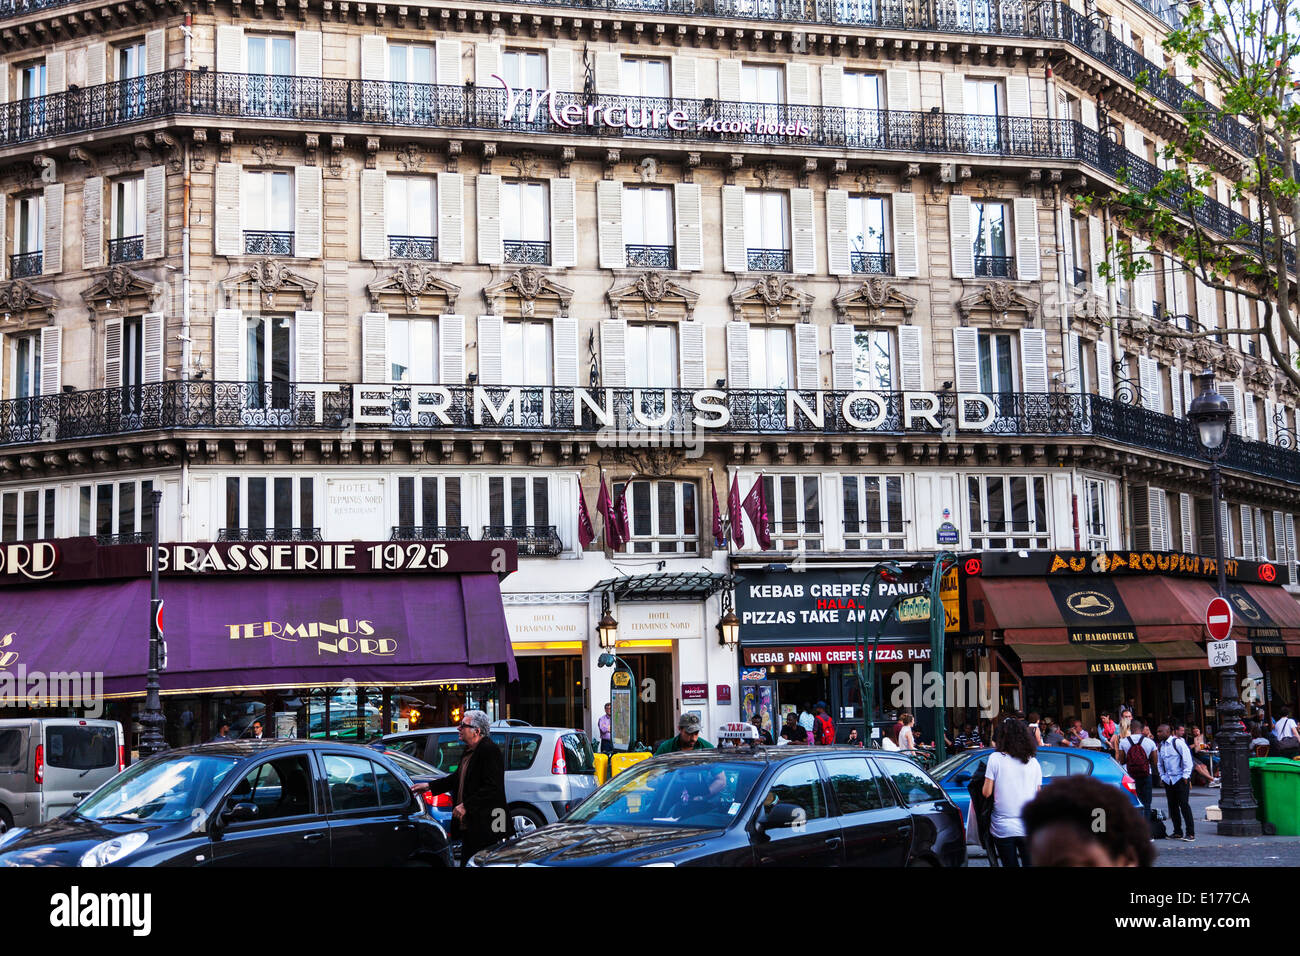 the hotel terminus nord in paris stock photos the hotel terminus nord in paris stock images. Black Bedroom Furniture Sets. Home Design Ideas